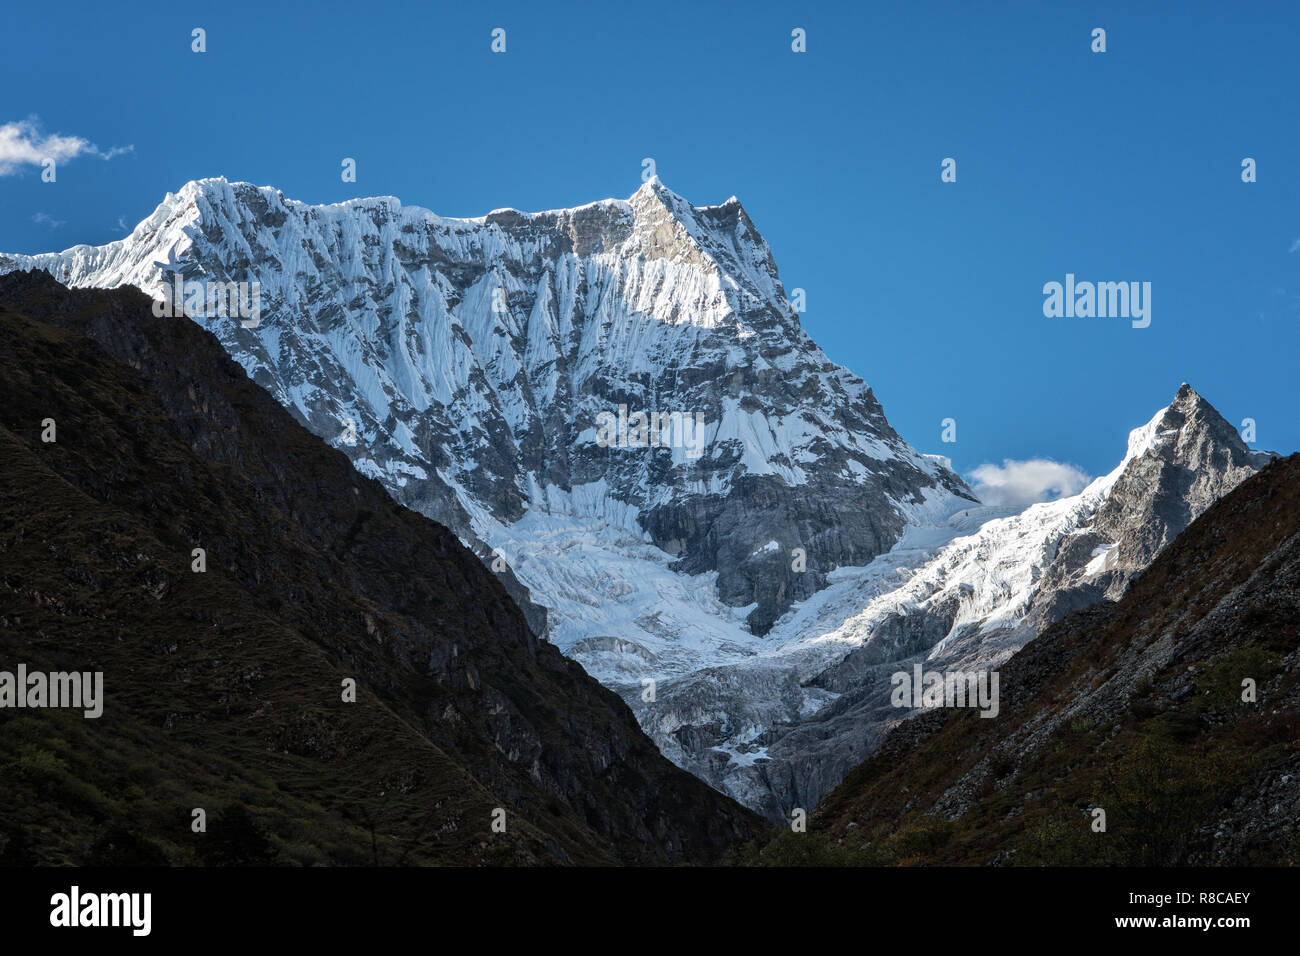 Gangchhenta (Great Tiger Mountain), Gasa District, Snowman Trek, Bhutan Stock Photo